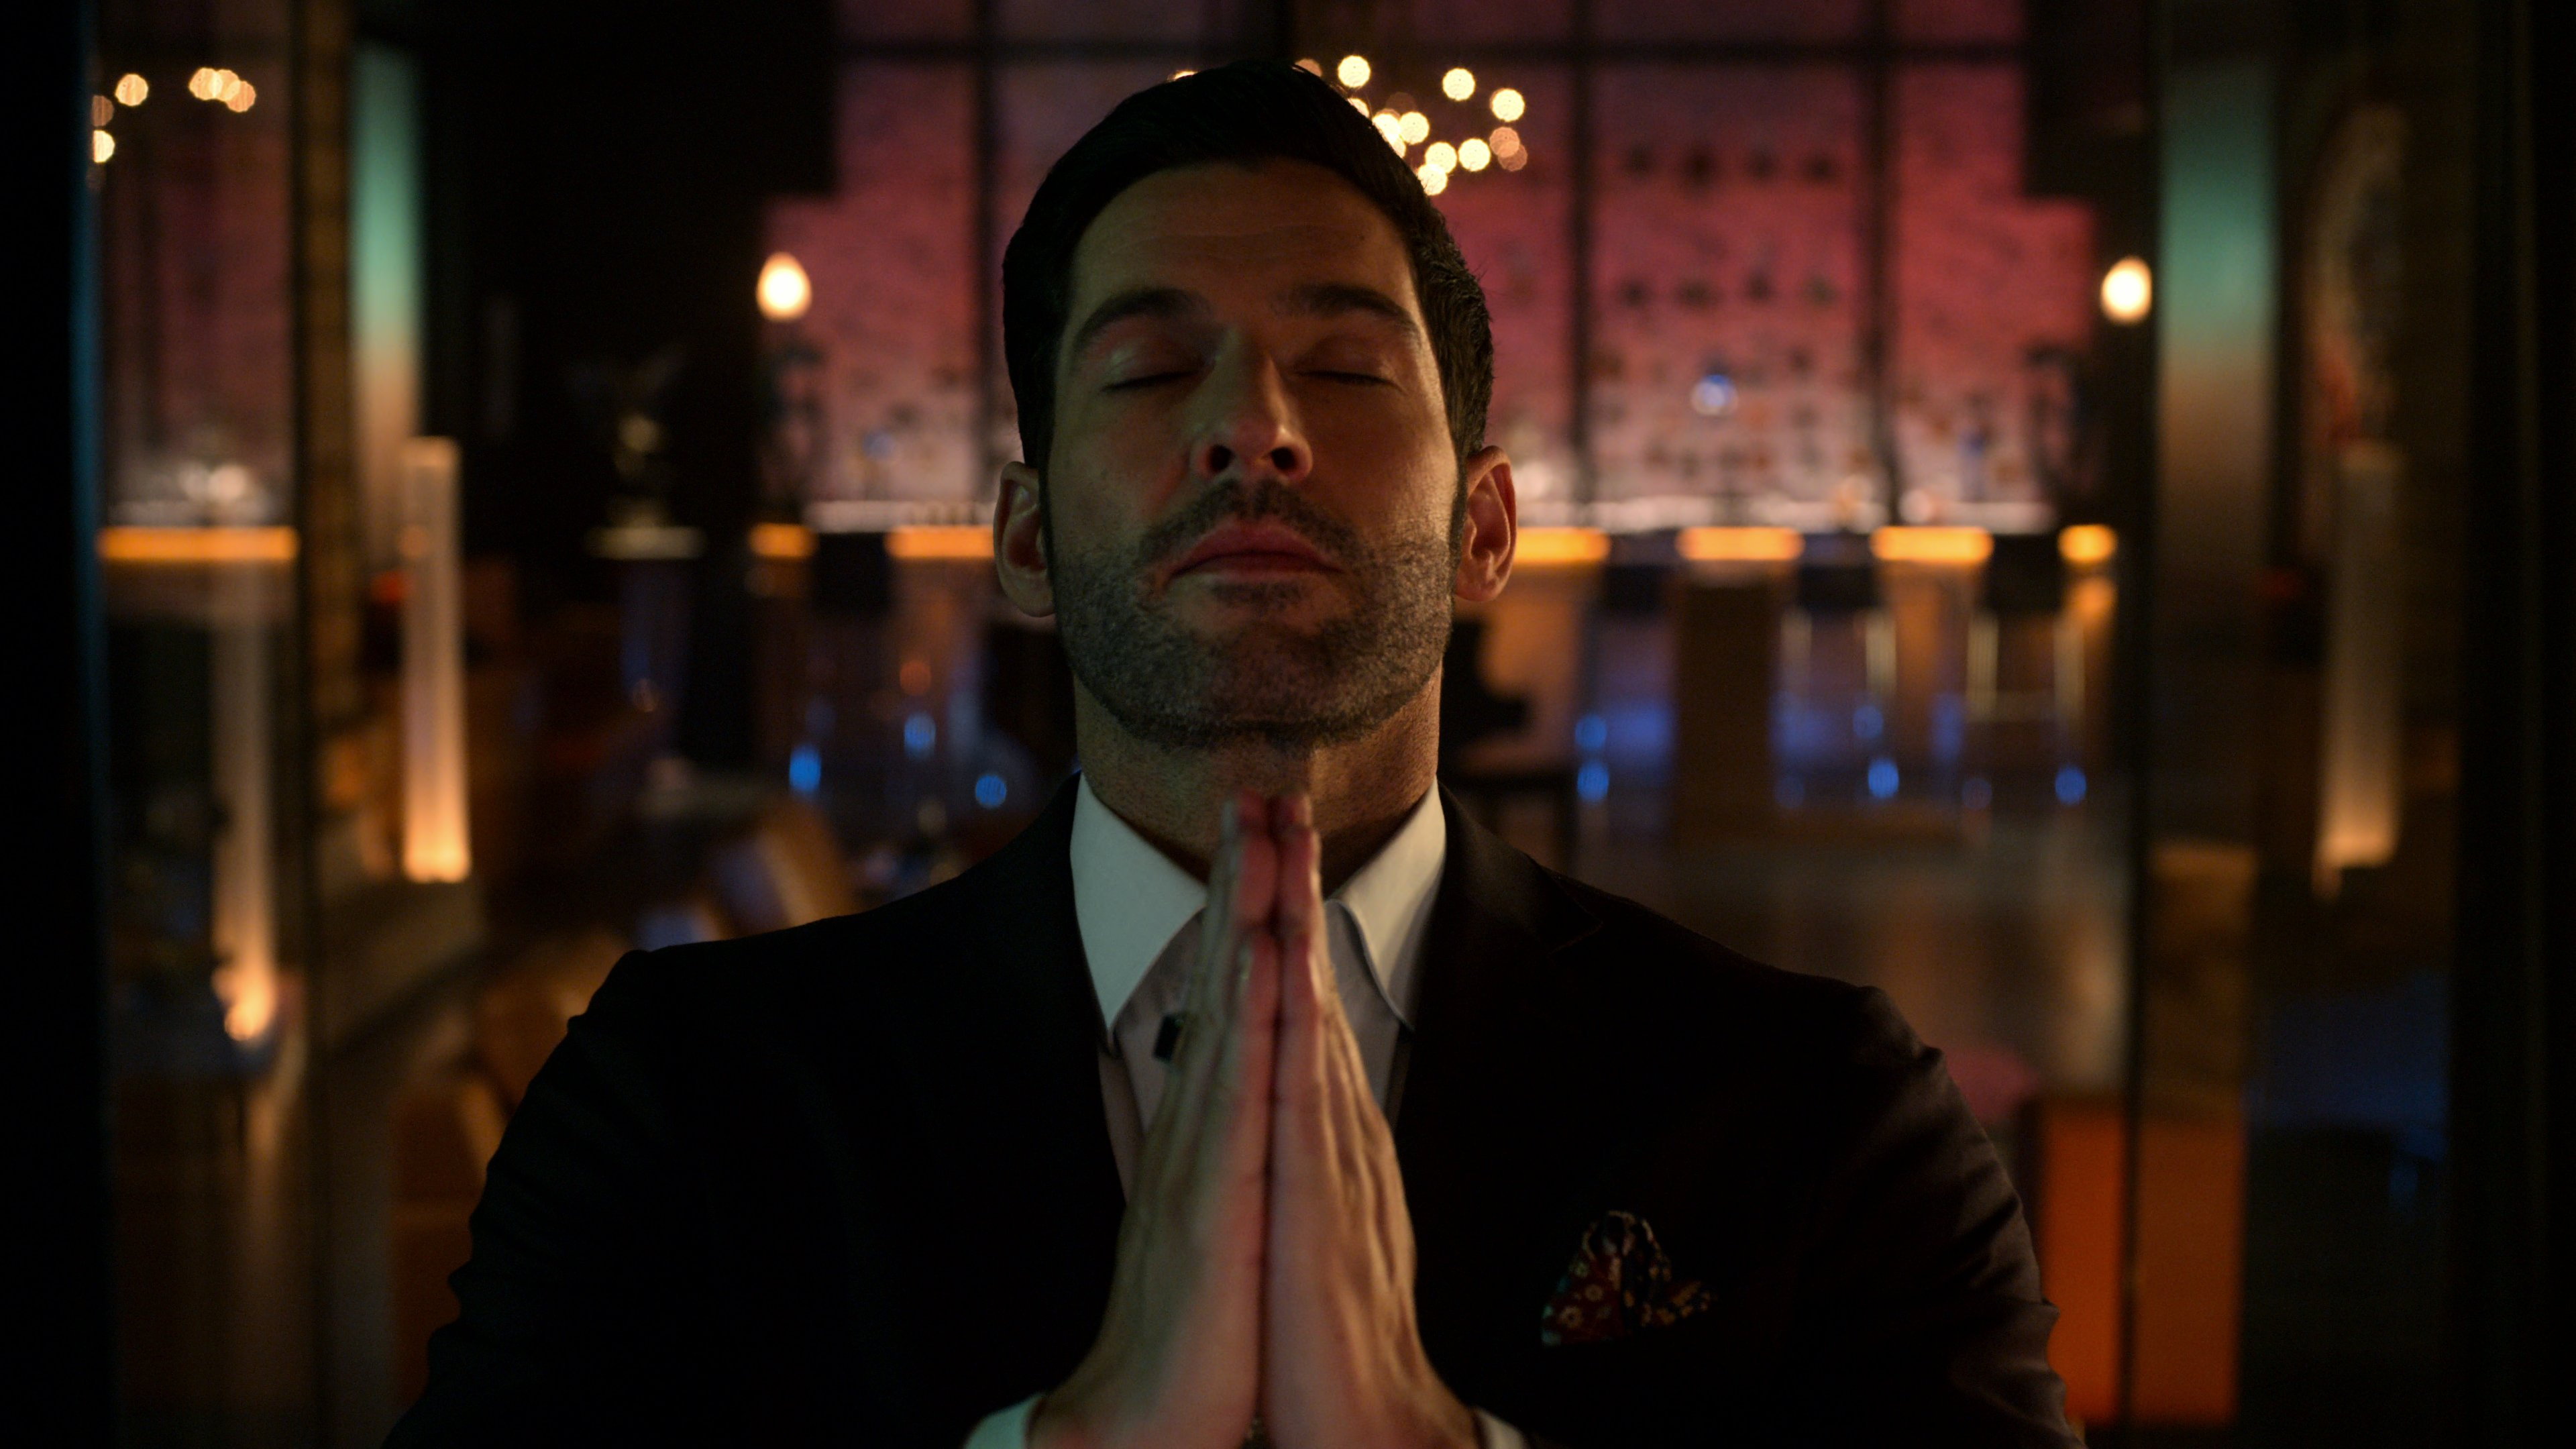 lucifer-5-temporada-parte-2-data-estreia-ed8k